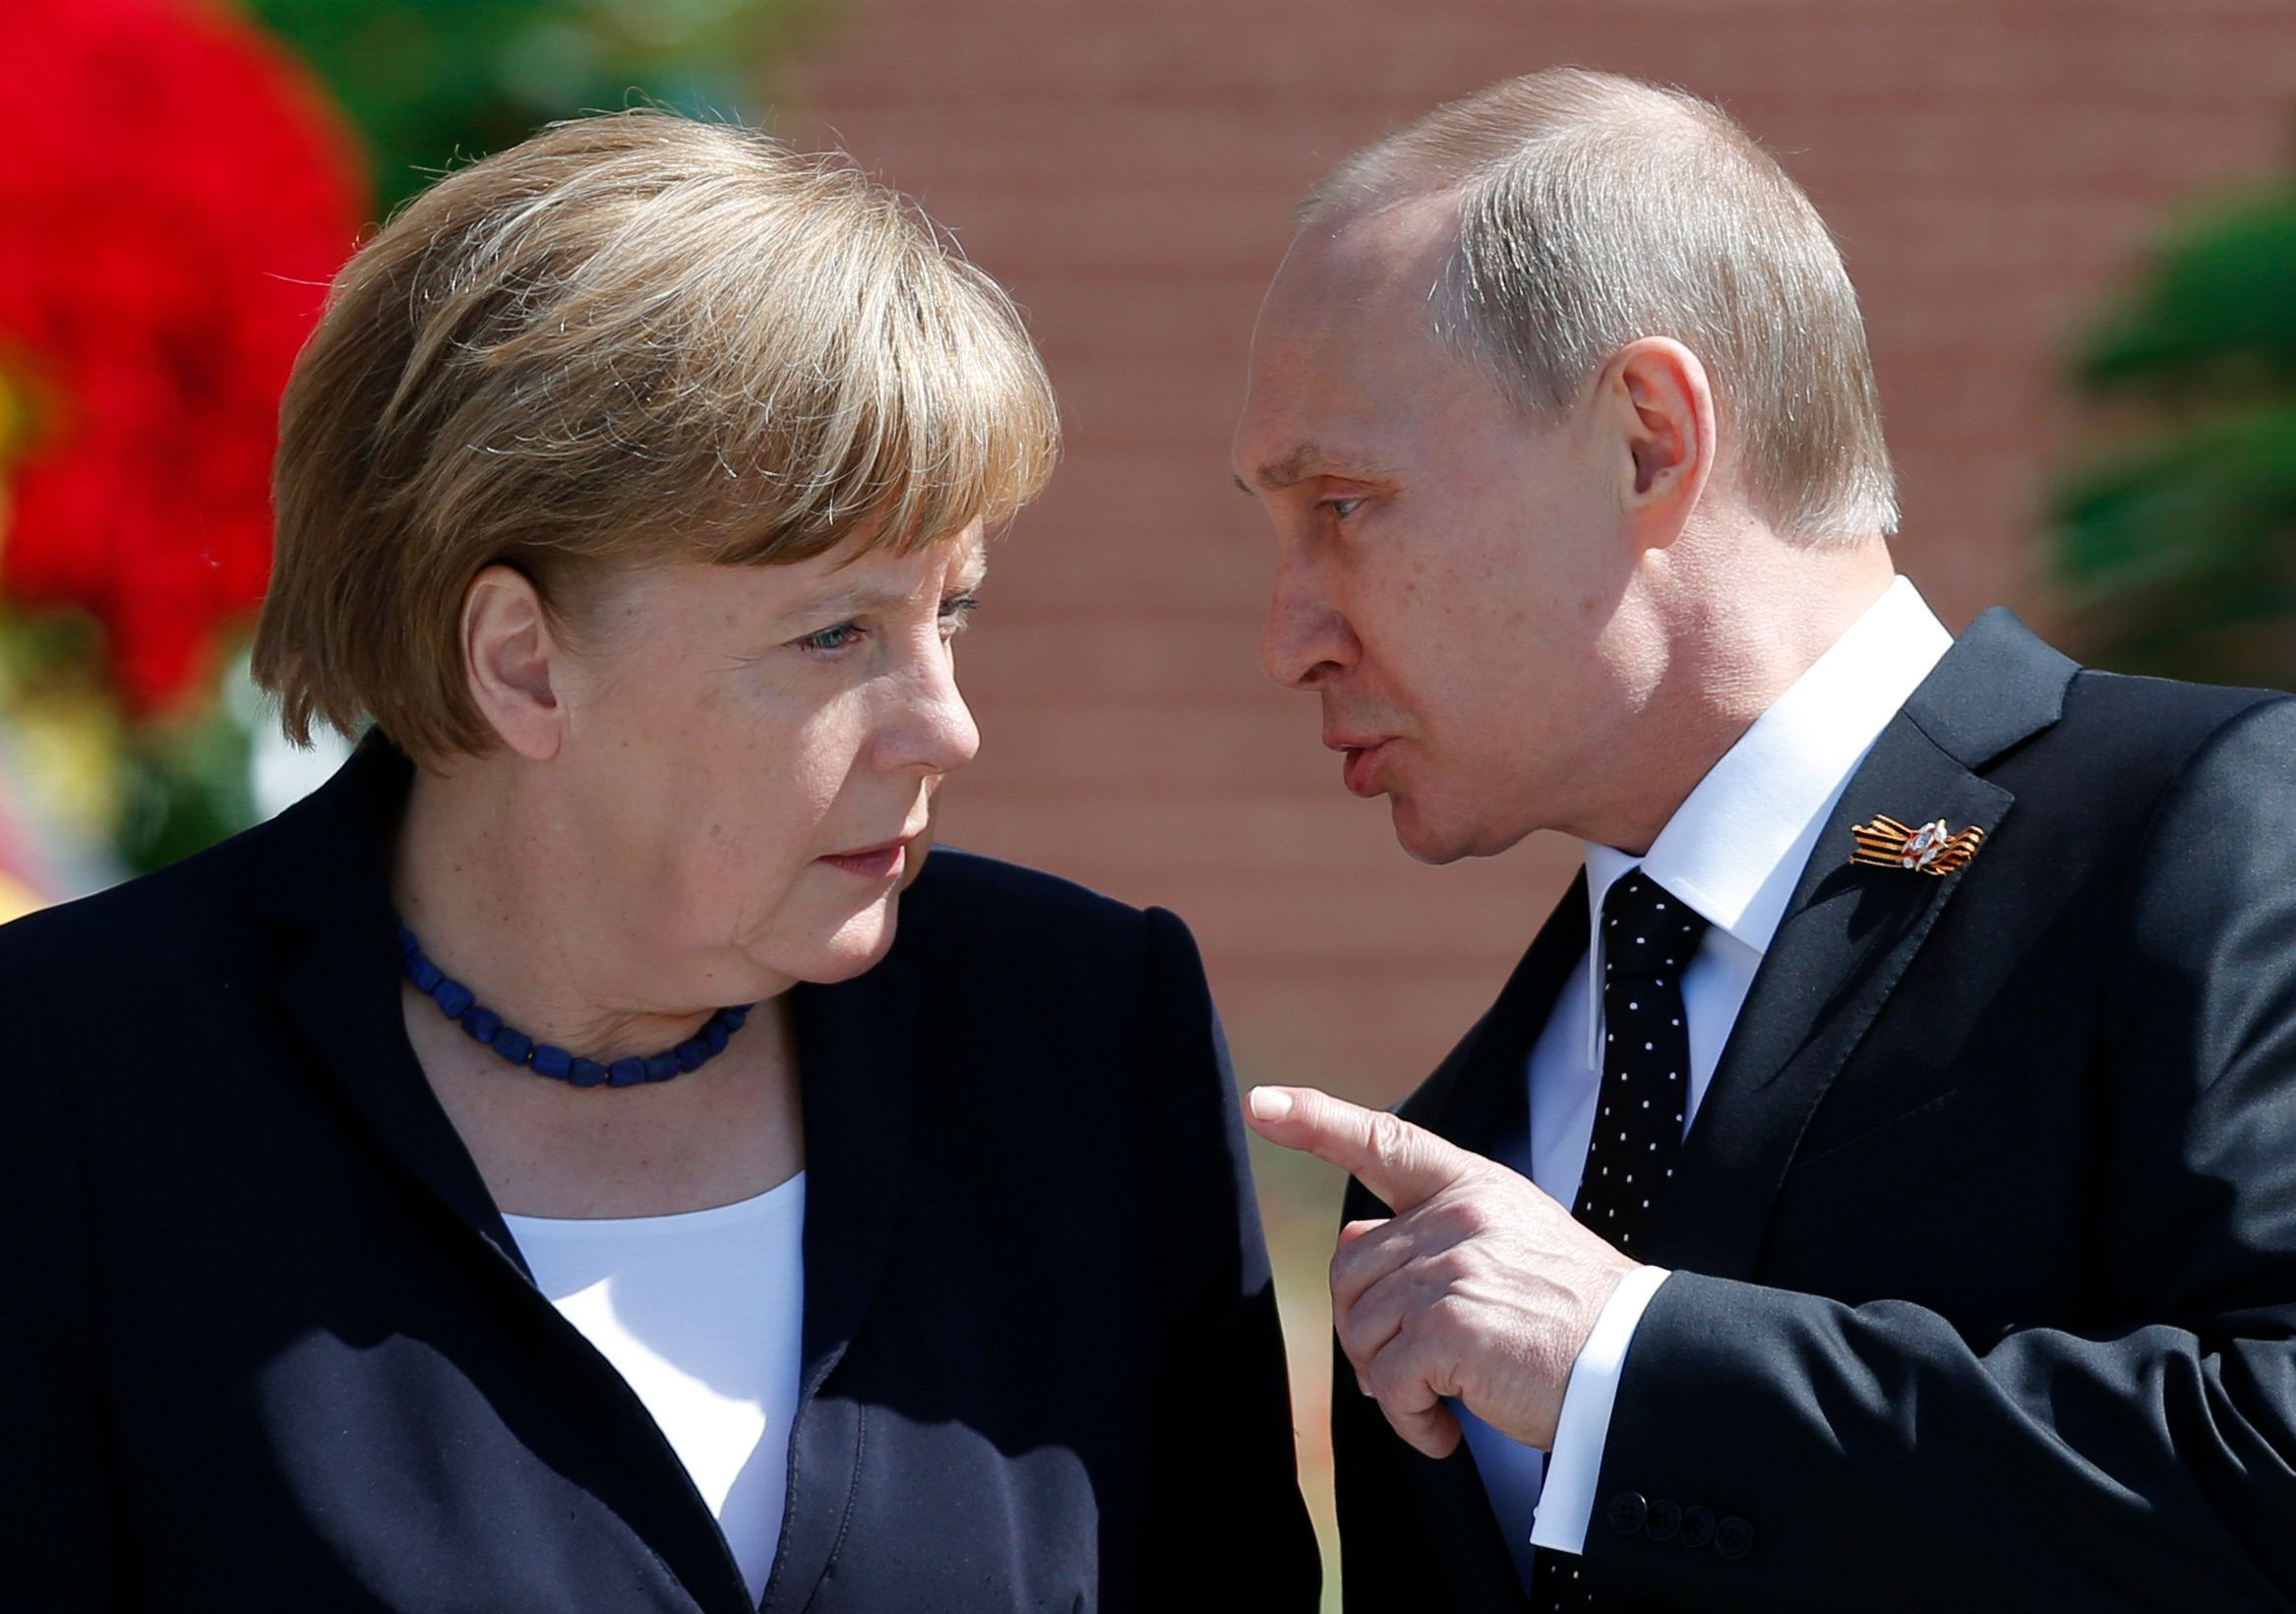 Russian President Vladimir Putin speaking with German Chancellor Angela Merkel at the Tomb of the Unknown Soldier by the Krem